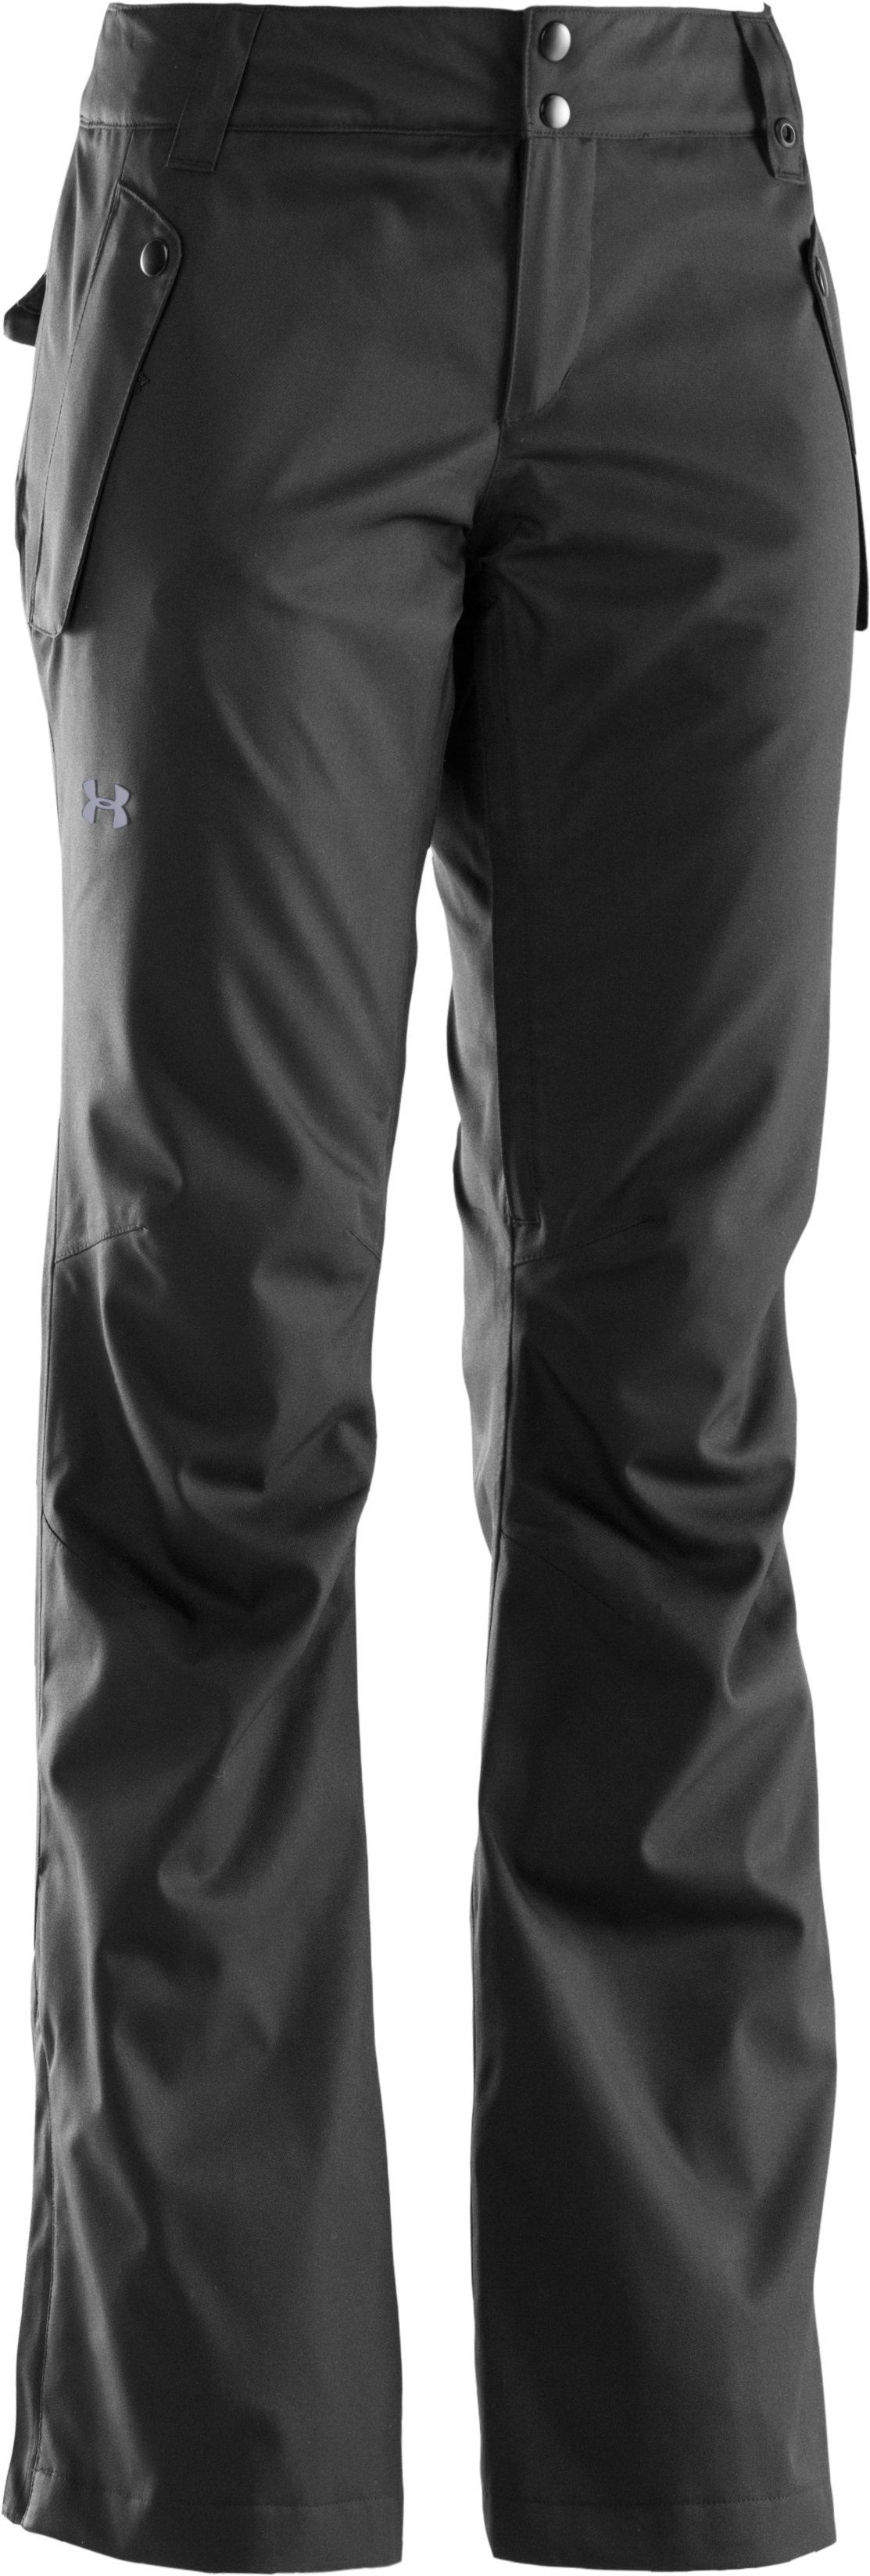 Women's ColdGear® Infrared Fader Pant, Black